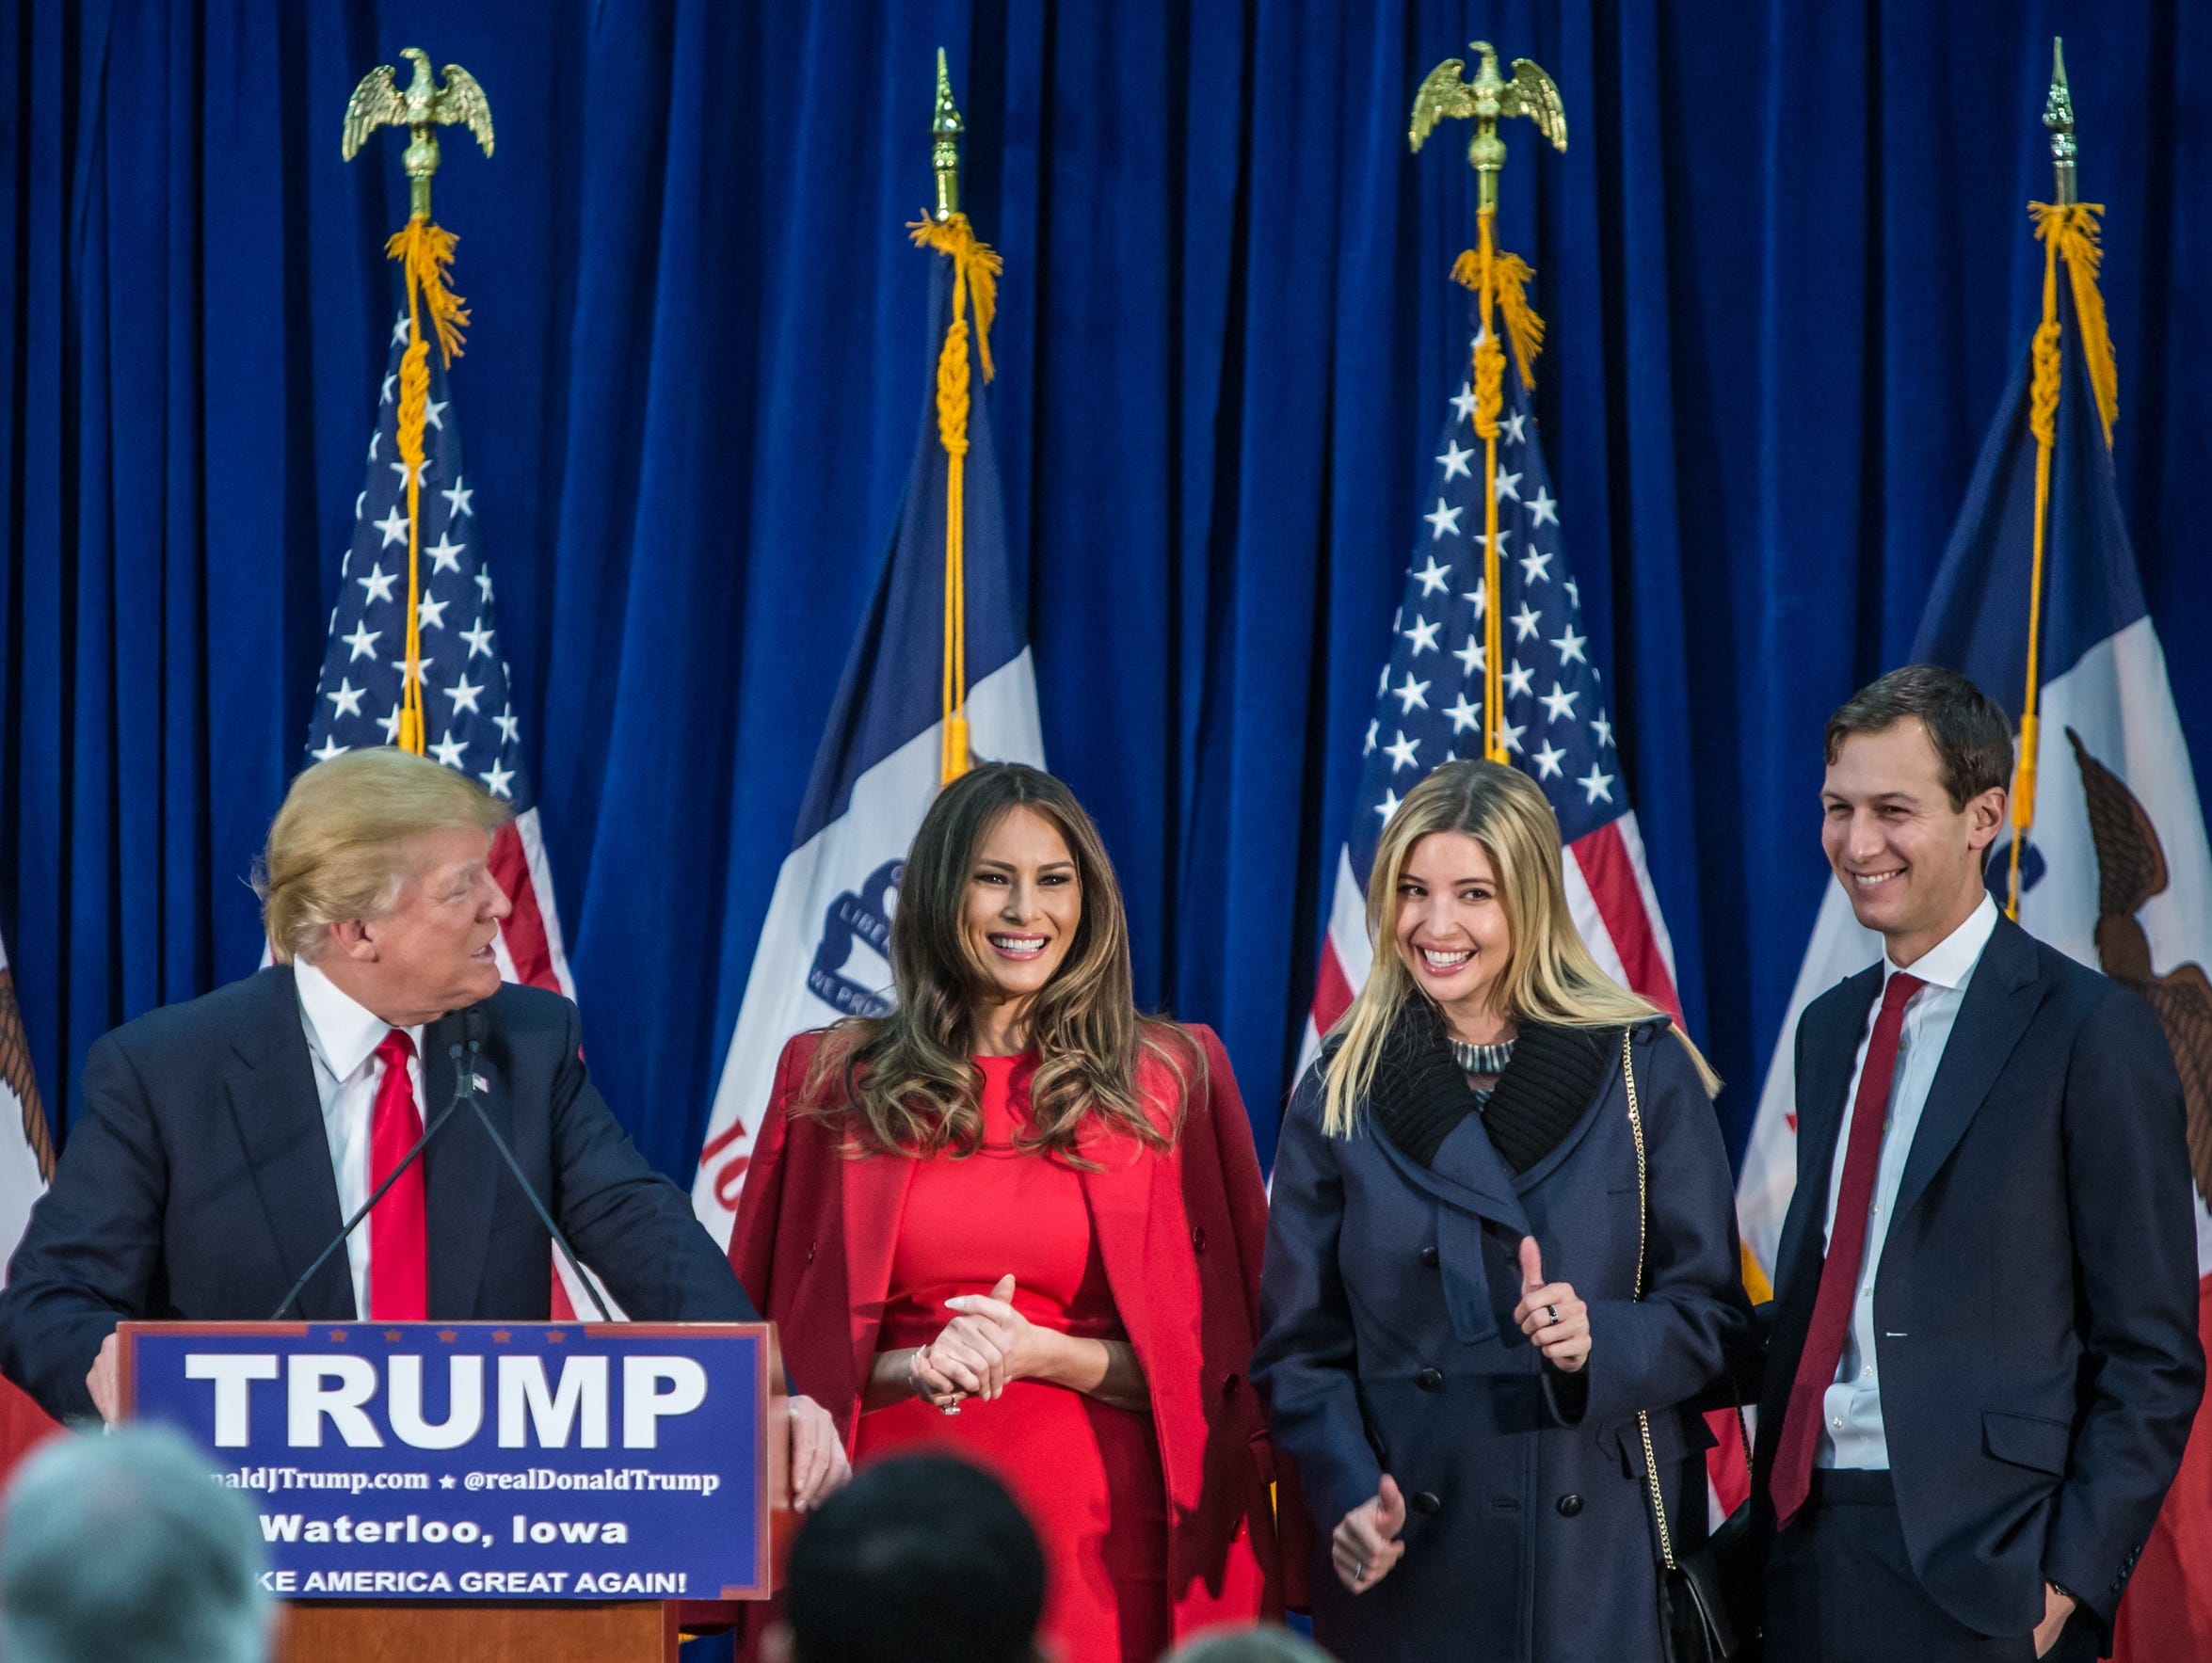 Republican presidential candidate Donald Trump is joined